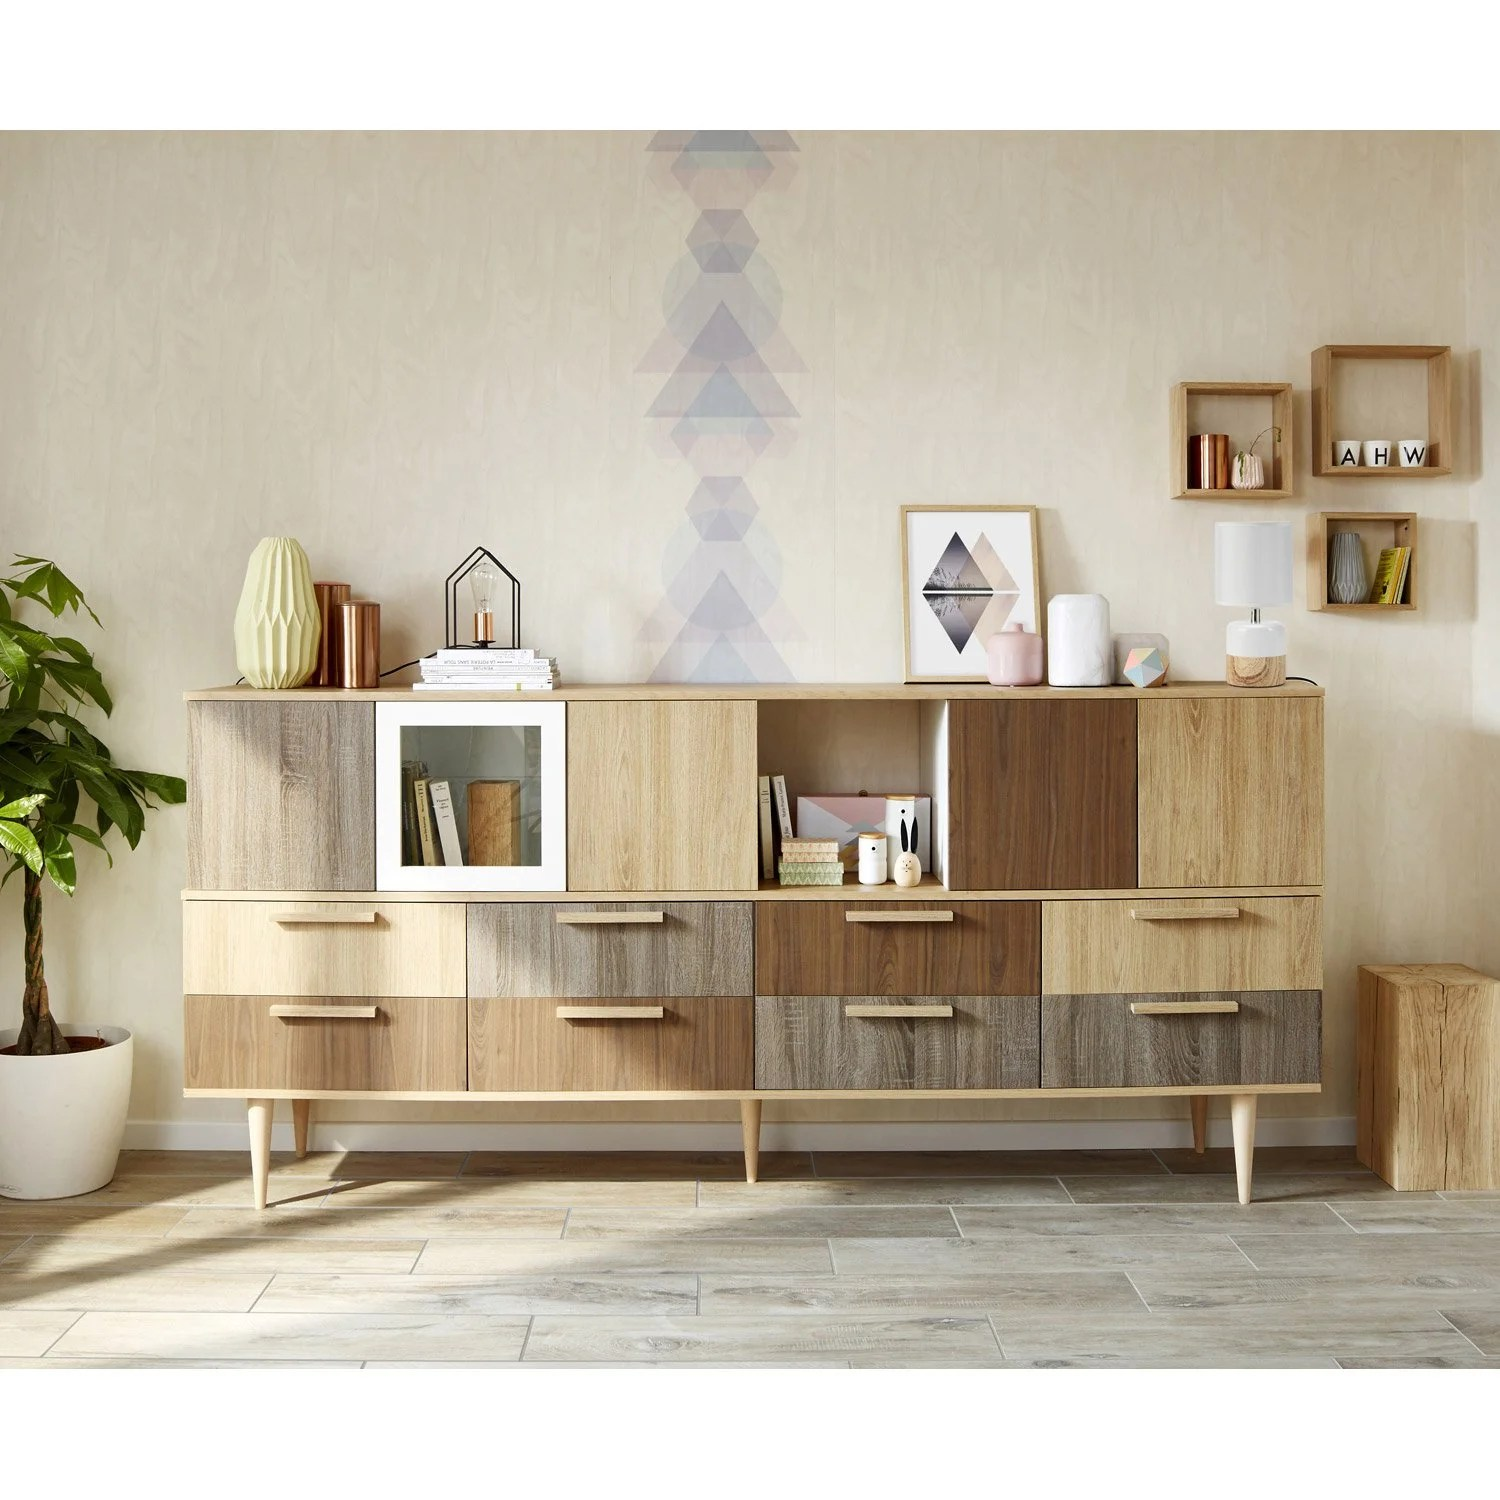 Buffet Leroy Merlin Porte Battante Spaceo Home 40 X 40 X 1 6 Cm Transparent